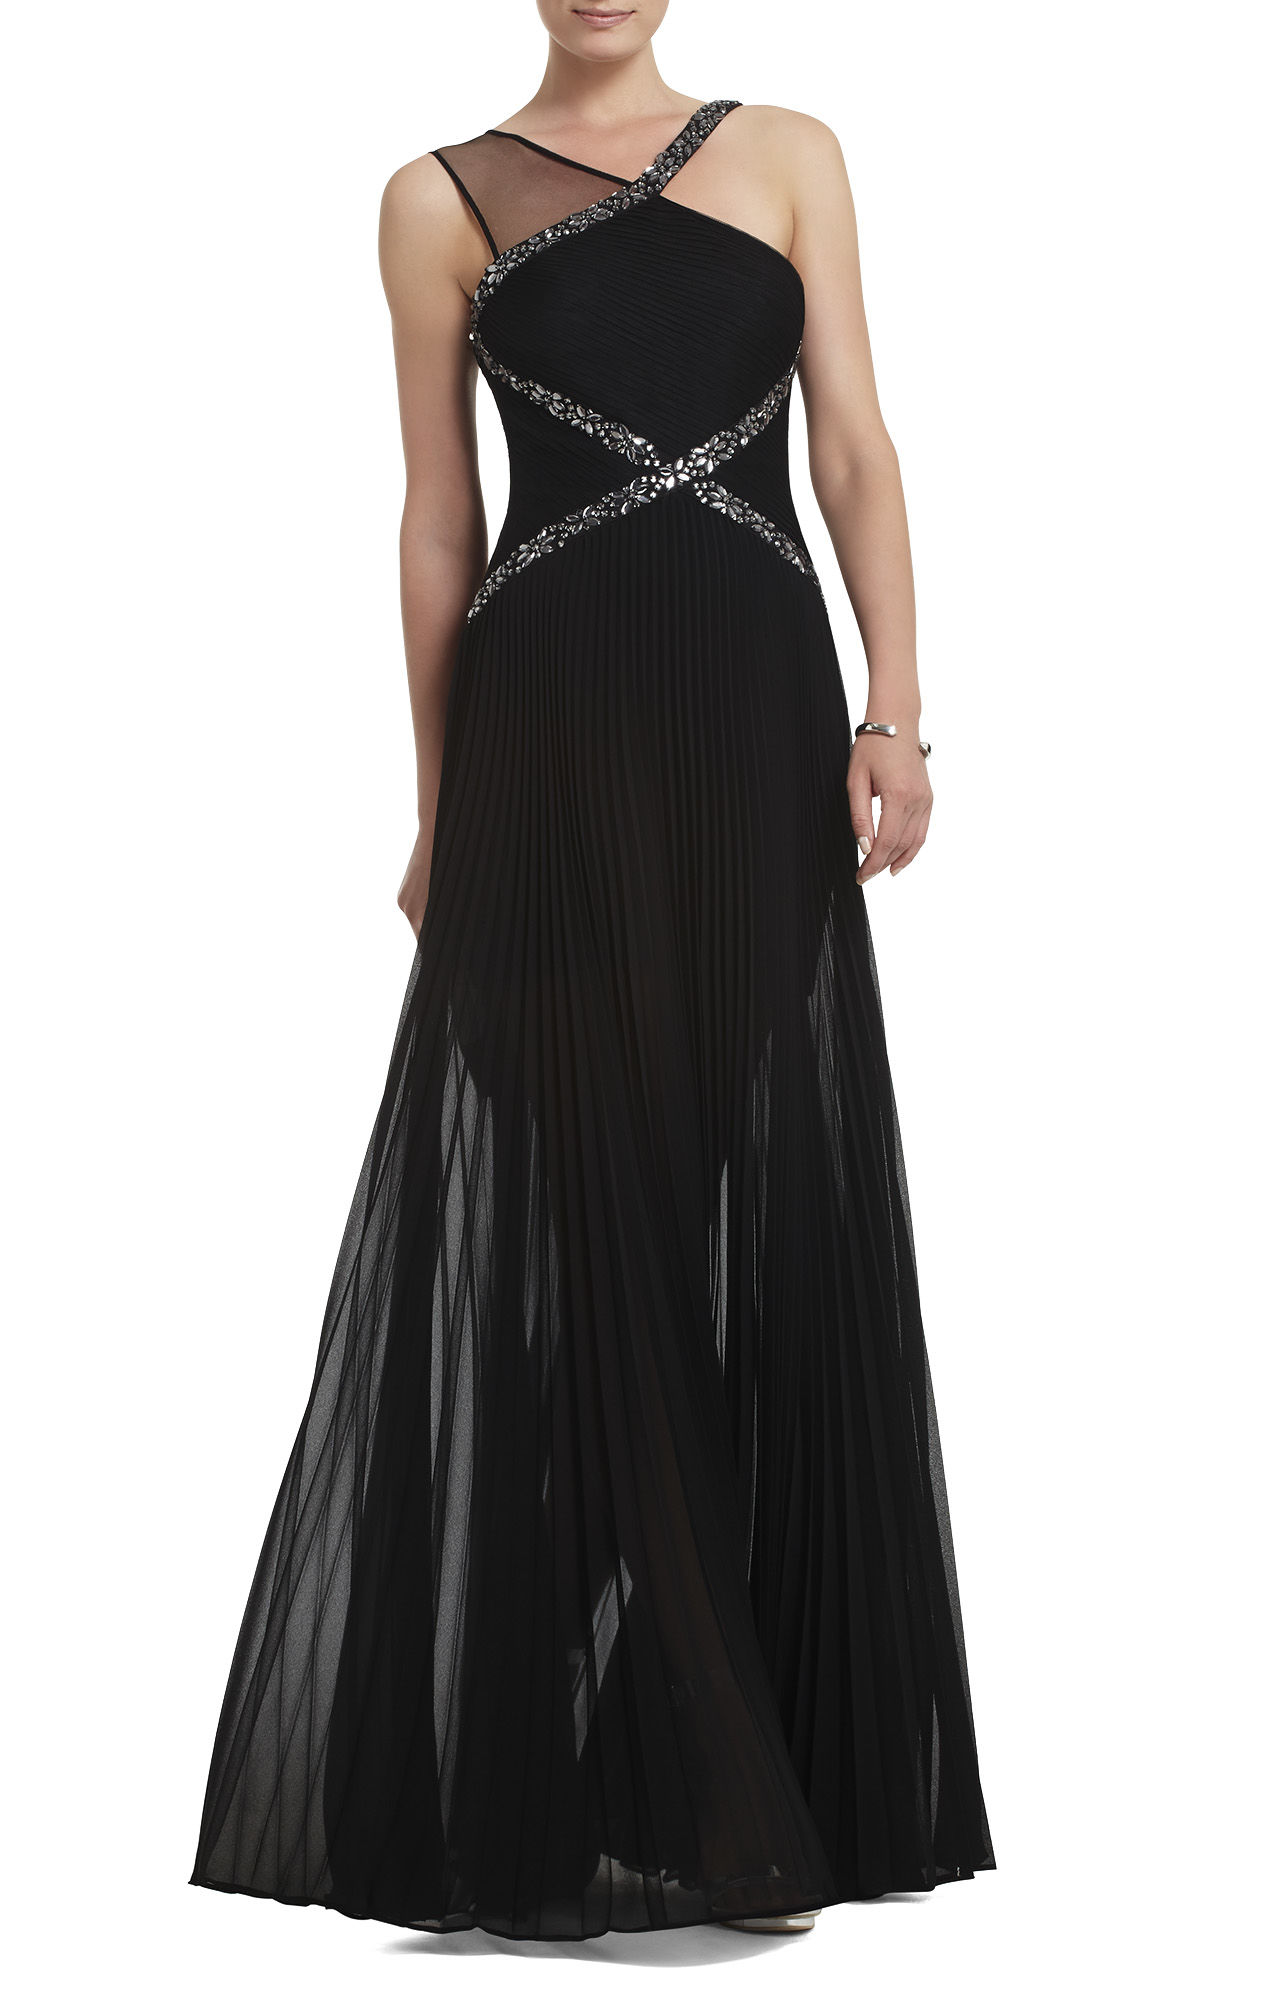 BCBG Carolyne Contrast Knit Evening Gown